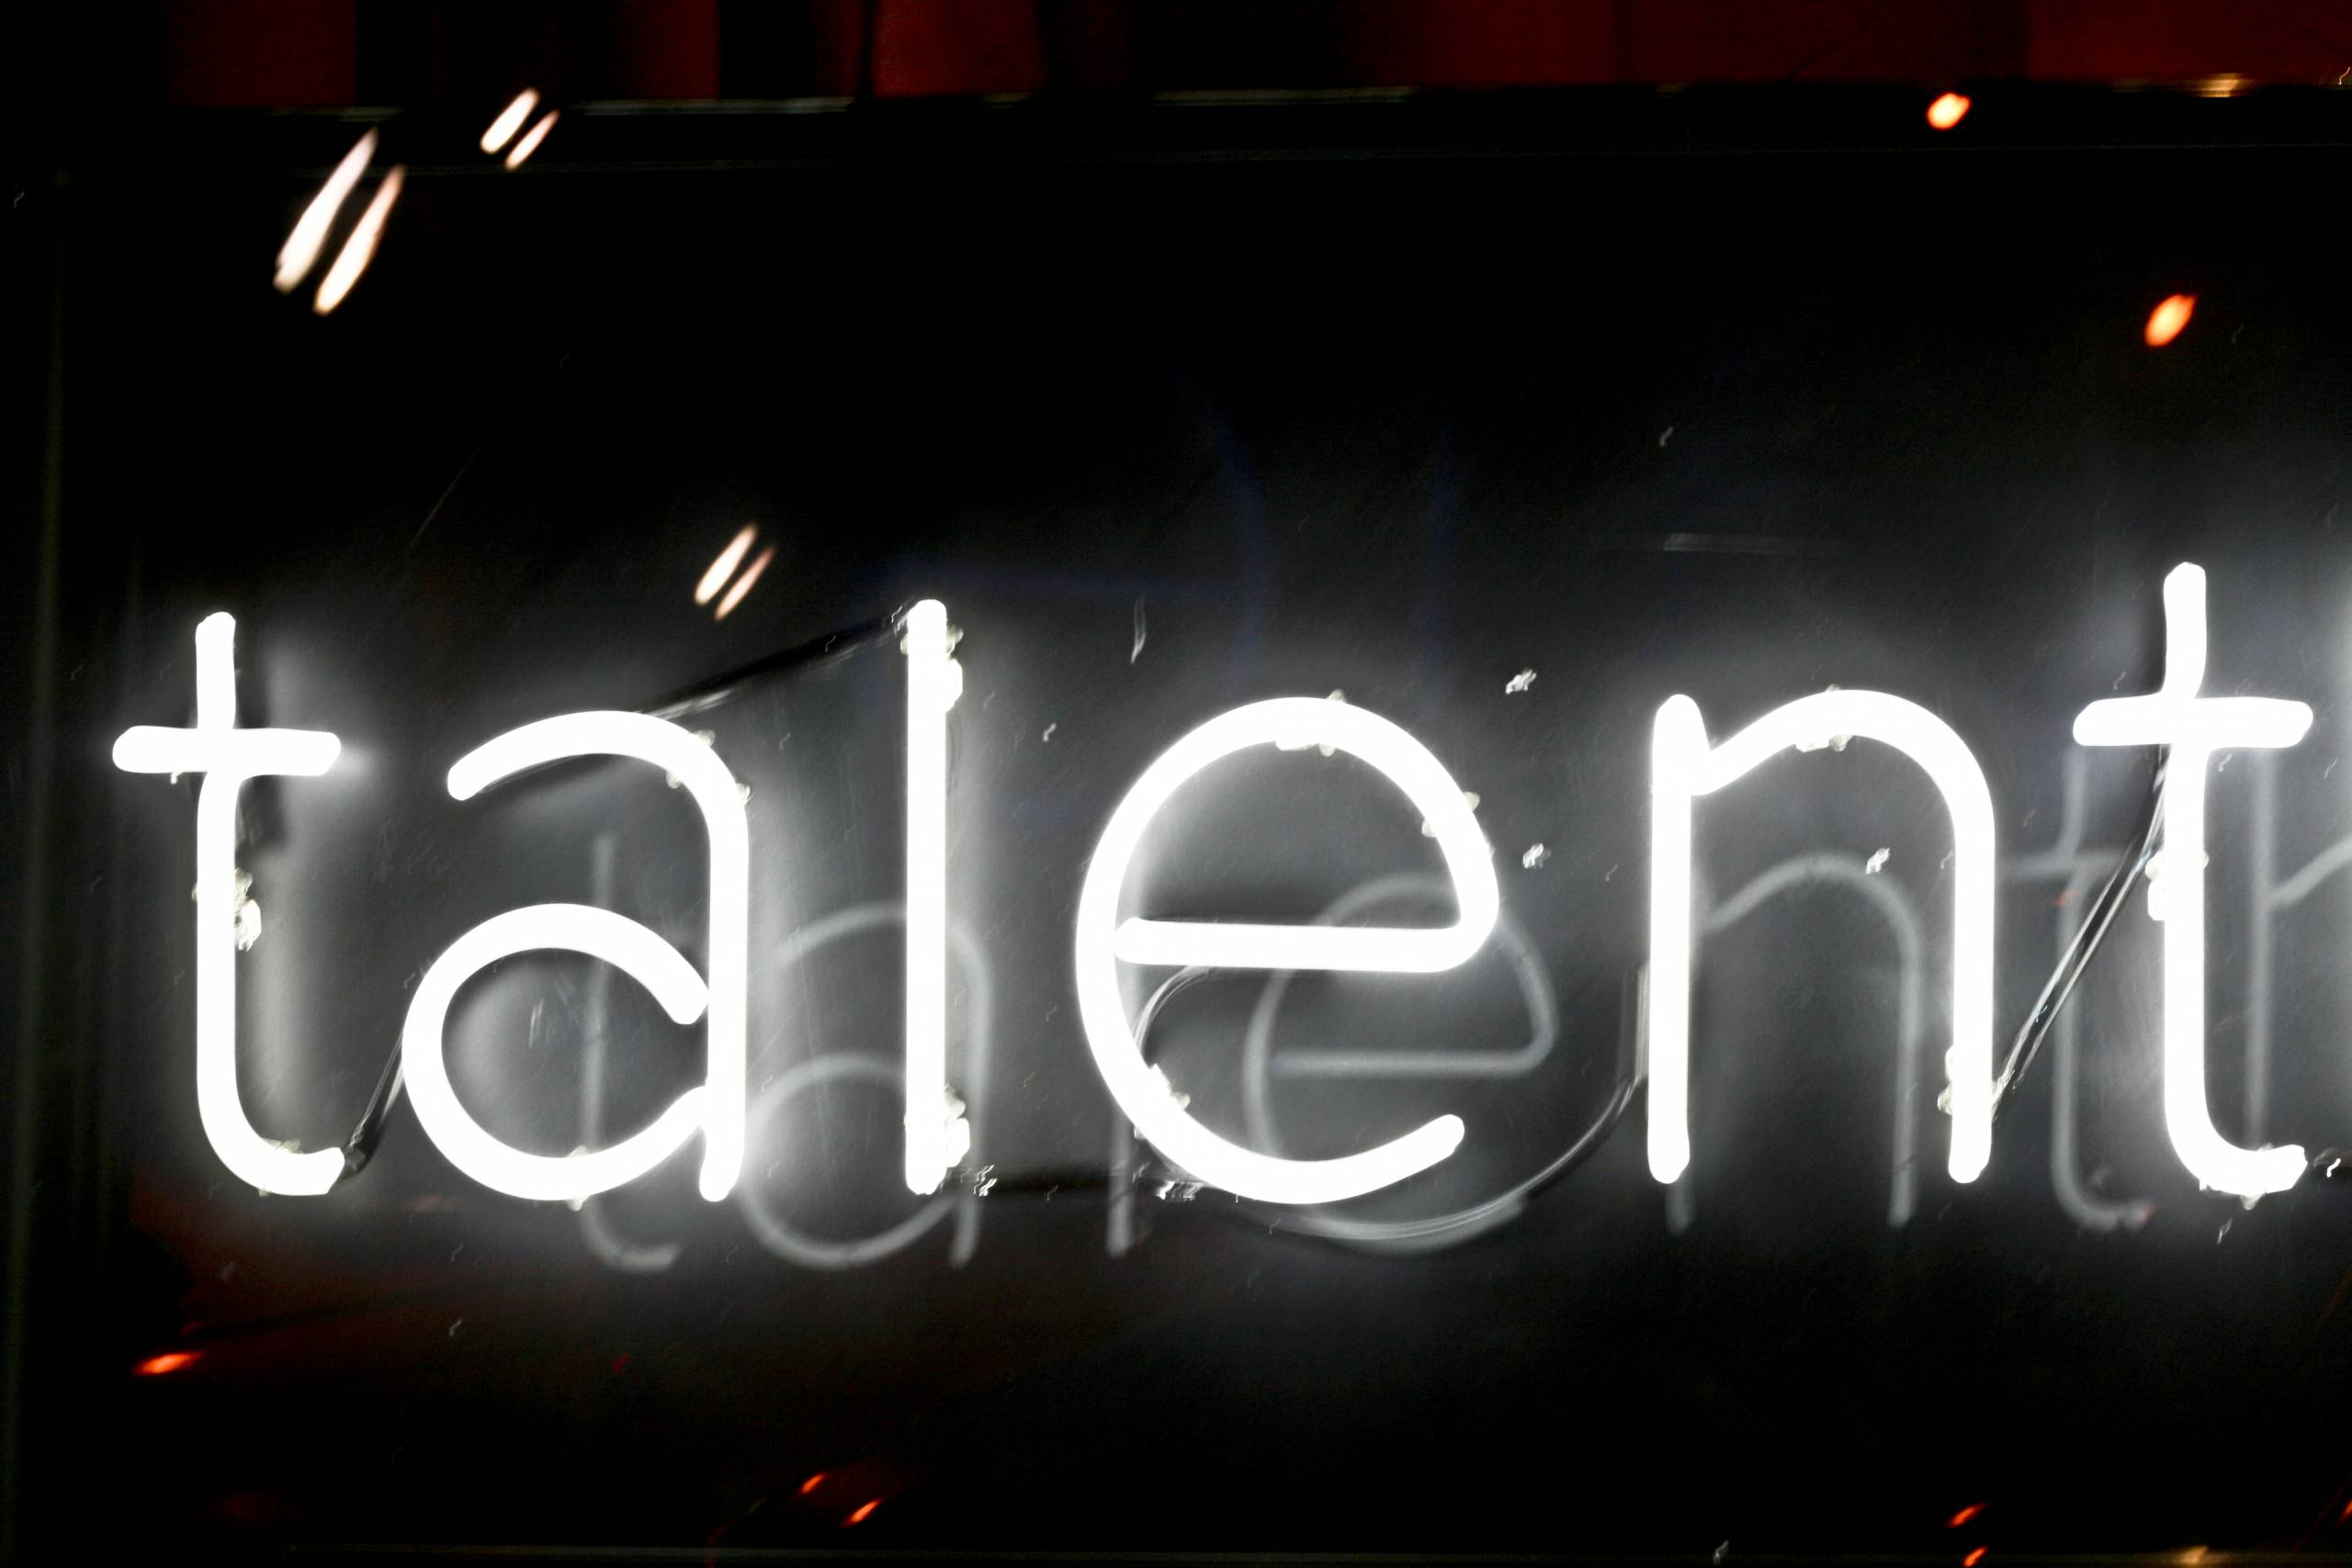 5 choses plus importantes que le talent